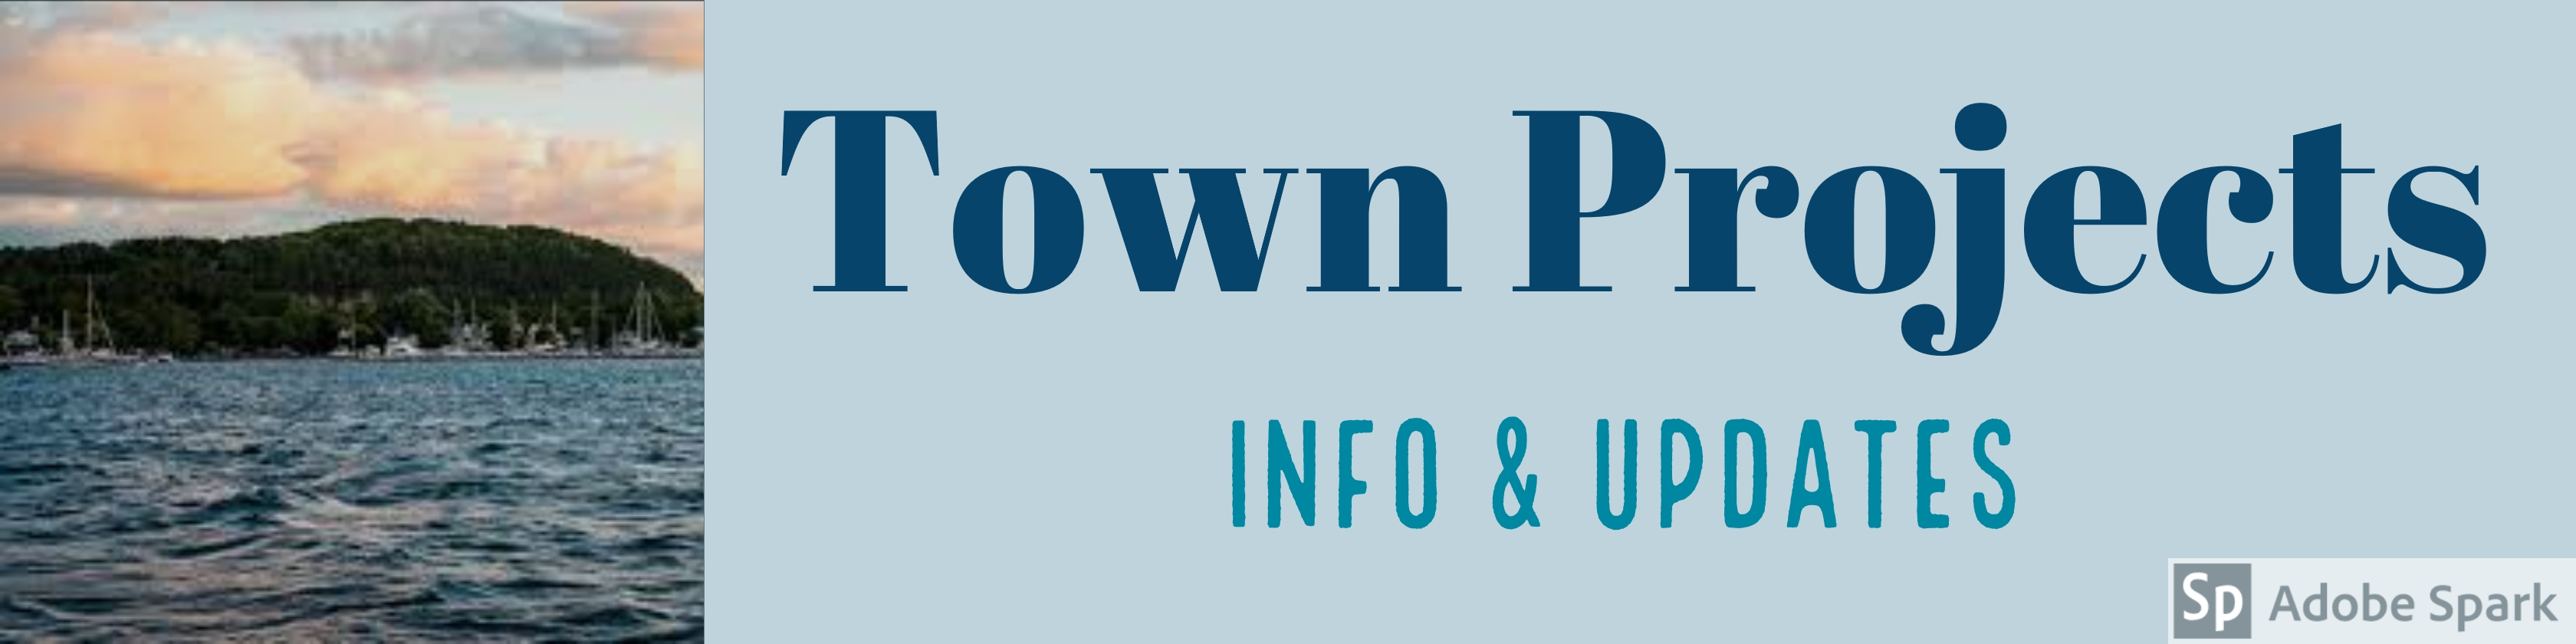 Town Projects banner